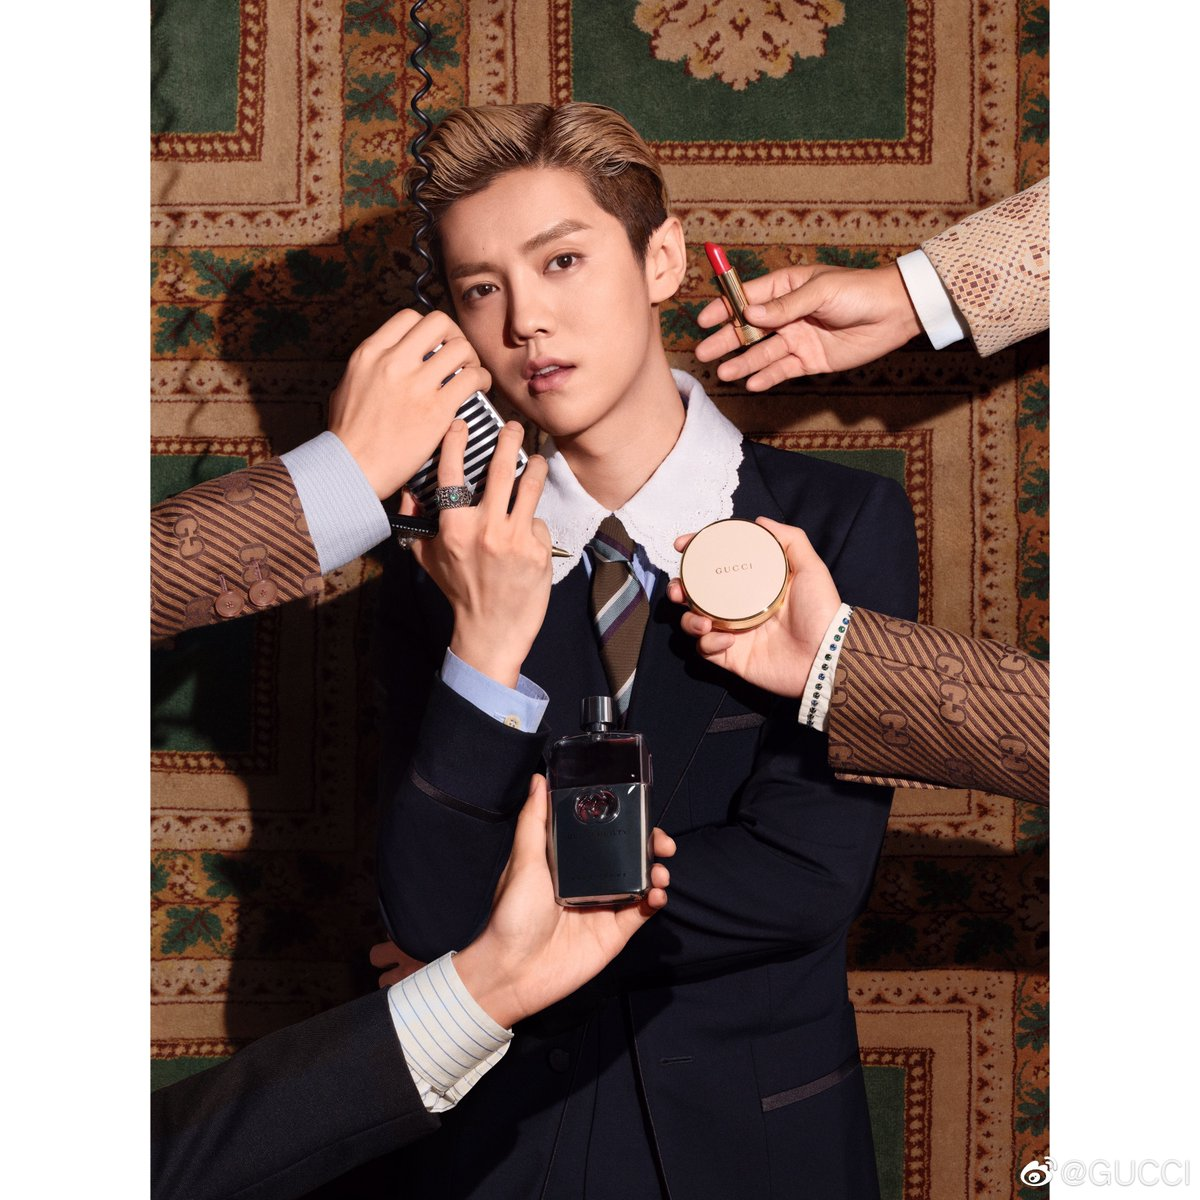 #LuHan just announced as spokesperson for Gucci! 🎉  #鹿晗 https://t.co/1bumCVgO26